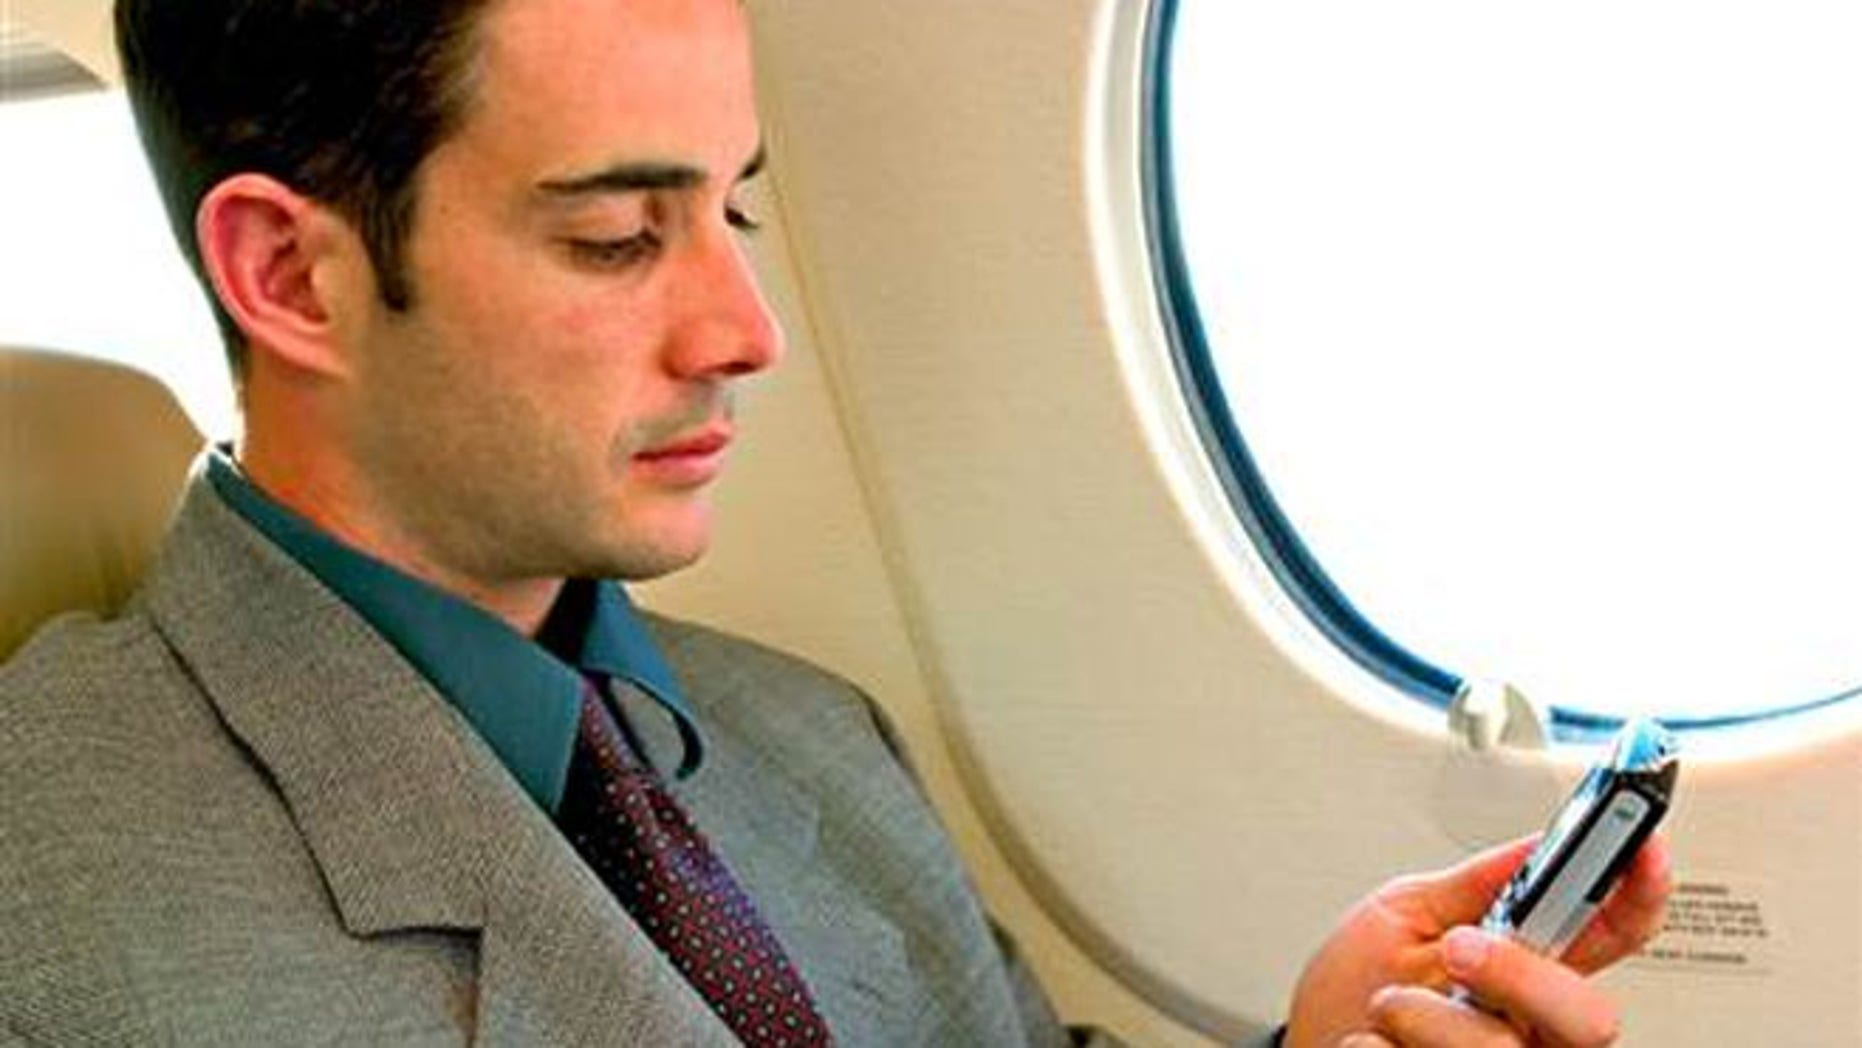 Emirates is now allowing its A380 aircraft passengers to chat on their mobile devices while in the air.